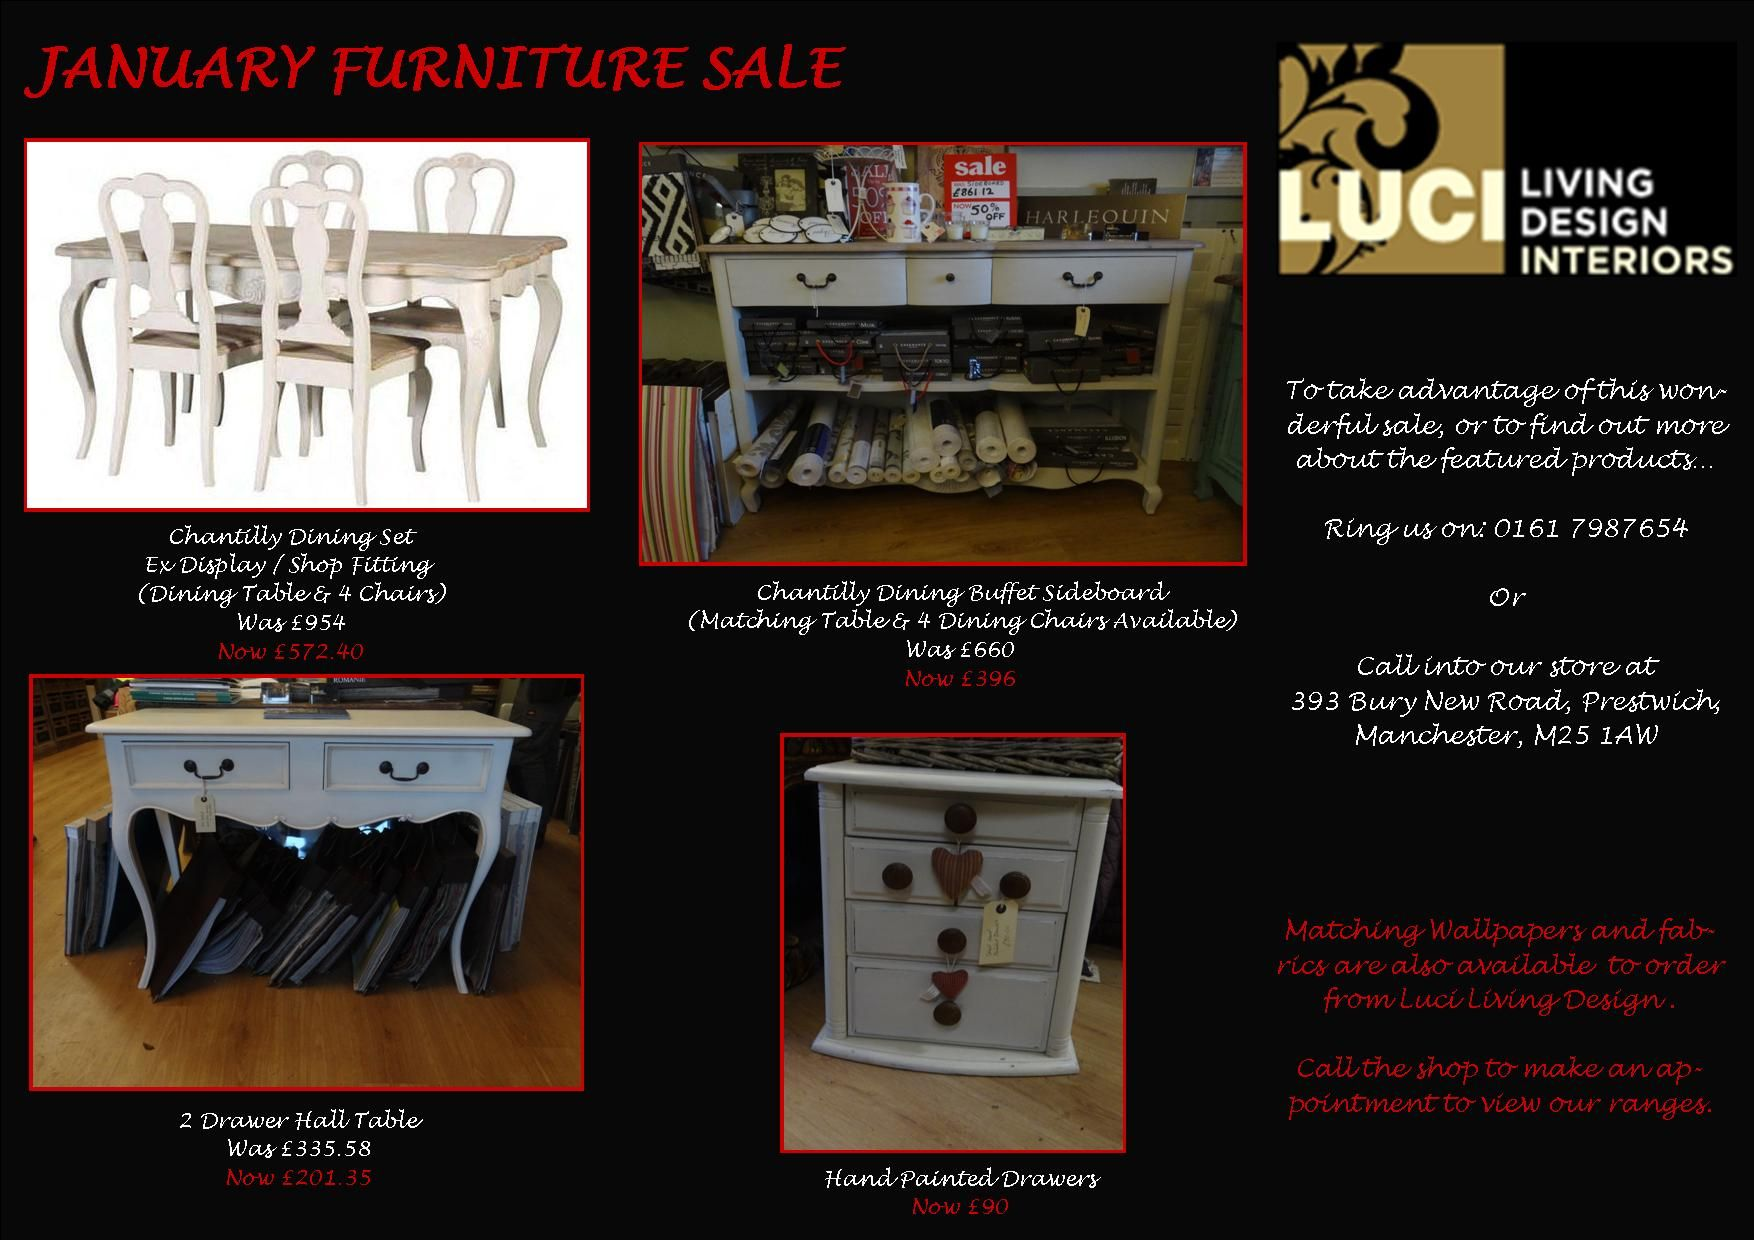 A range of white furniture items available in our January sale. Head over to the store to grab a bargain!